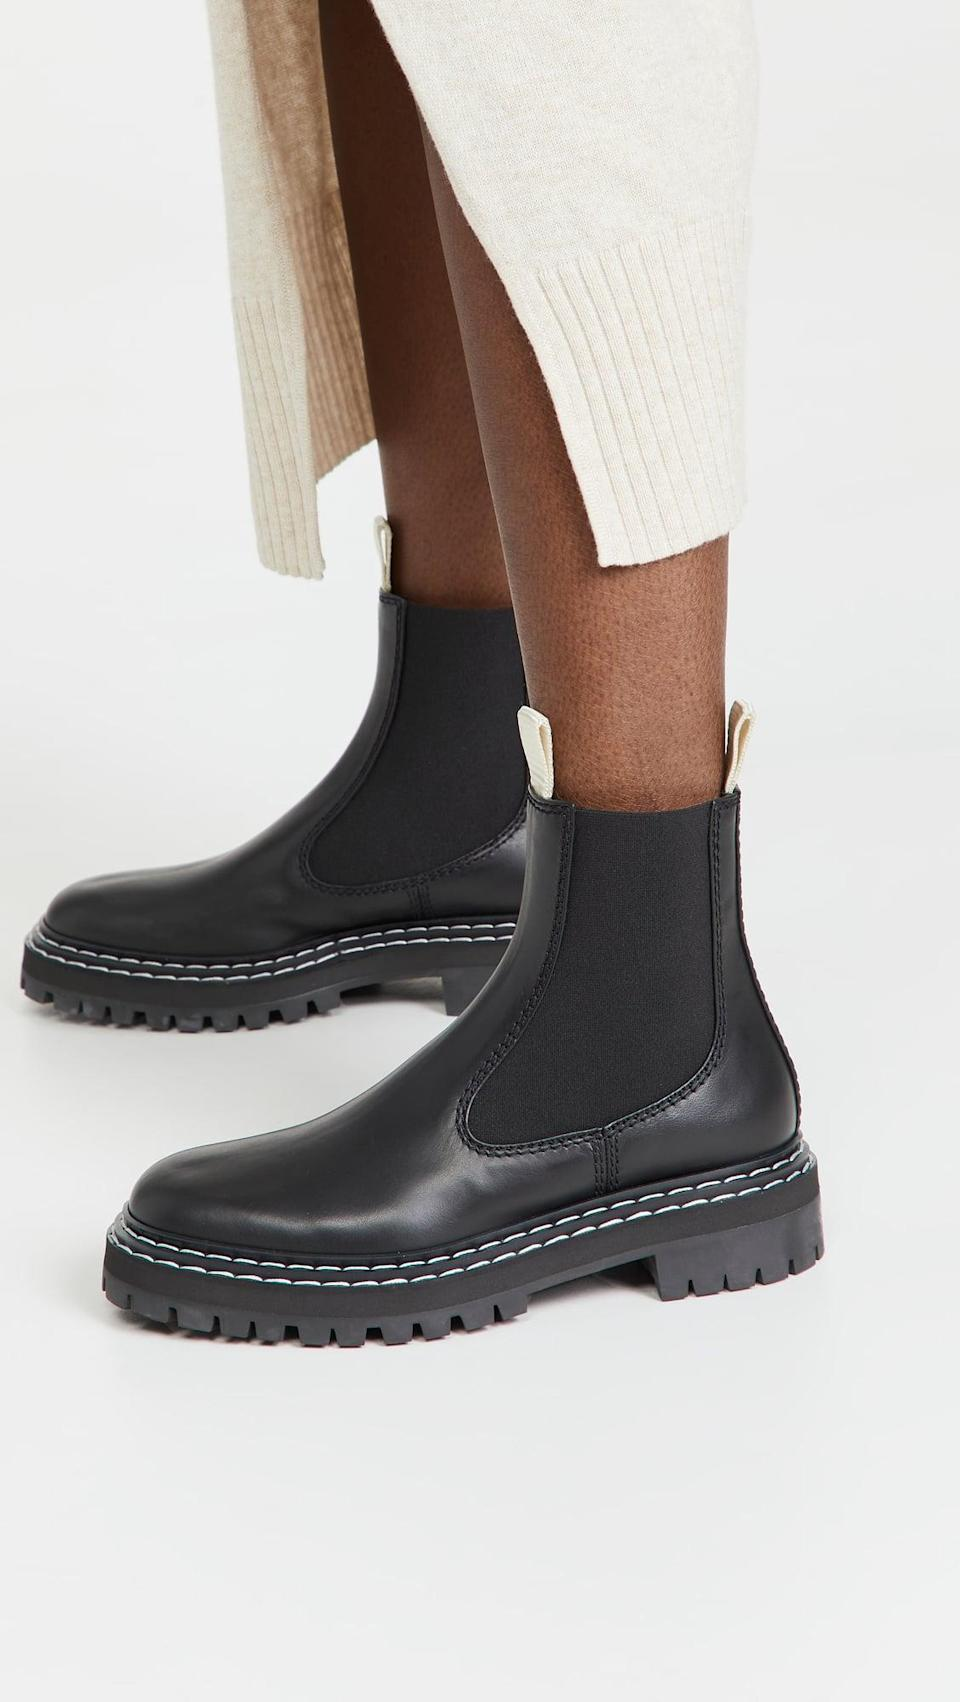 <p>The <span>Proenza Schouler Lug Sole Chelsea Boots</span> ($825) is at the top of our wish list. The splurge-worthy pair is easy to mix and match with just about anything.</p>